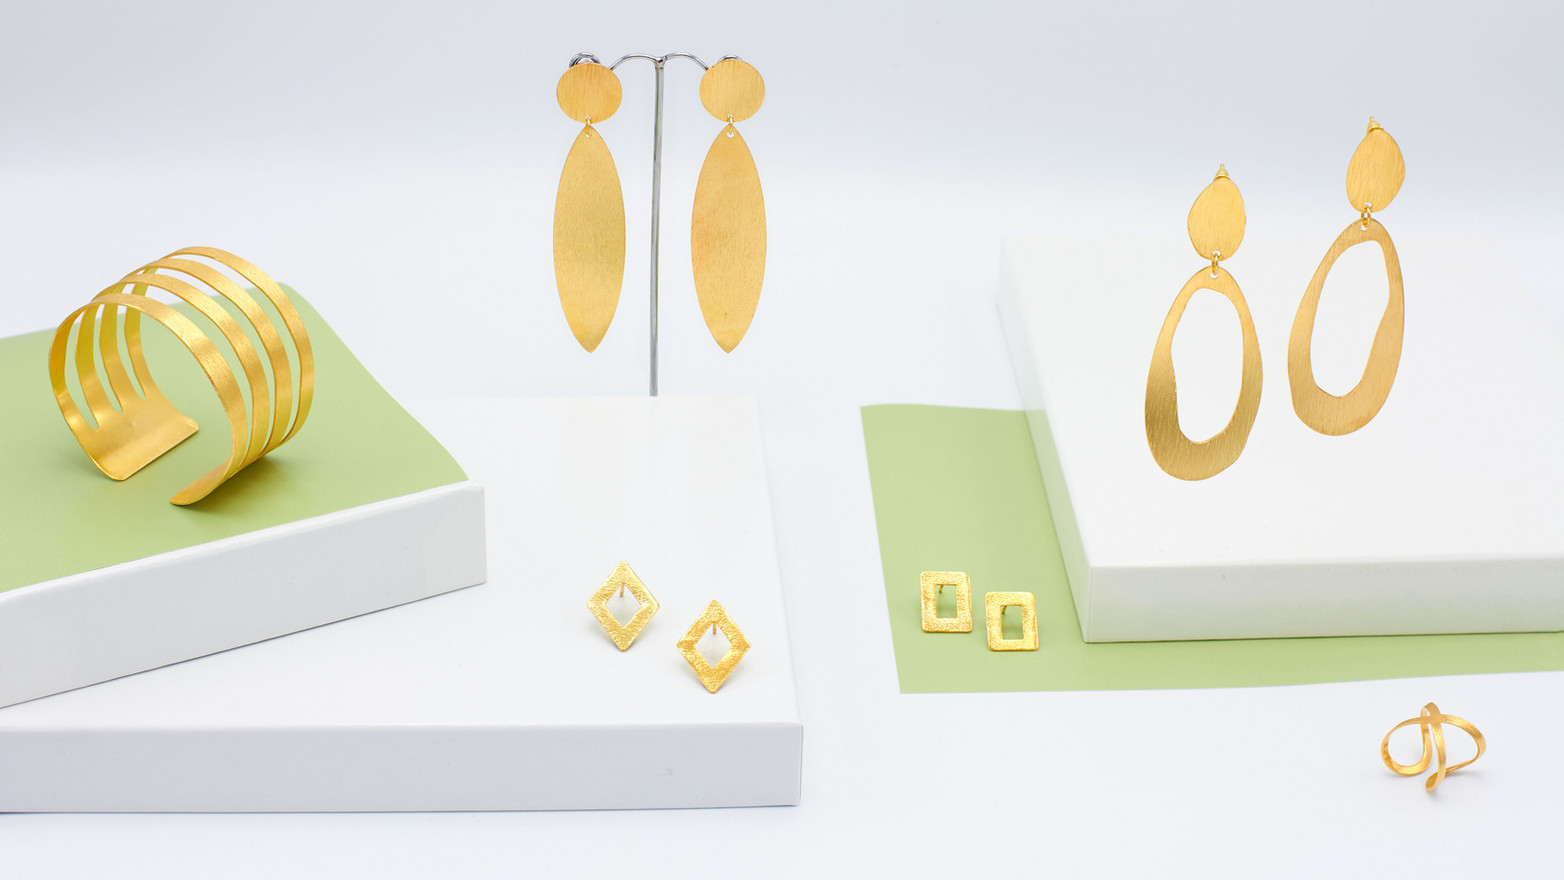 Jewelery from the Sélection Actuelle with gold jewelery from the spring collection with a bangle, a ring and two oval earrings made of brushed gold, as well as a pair of rectangular and diamond-shaped gold earrings